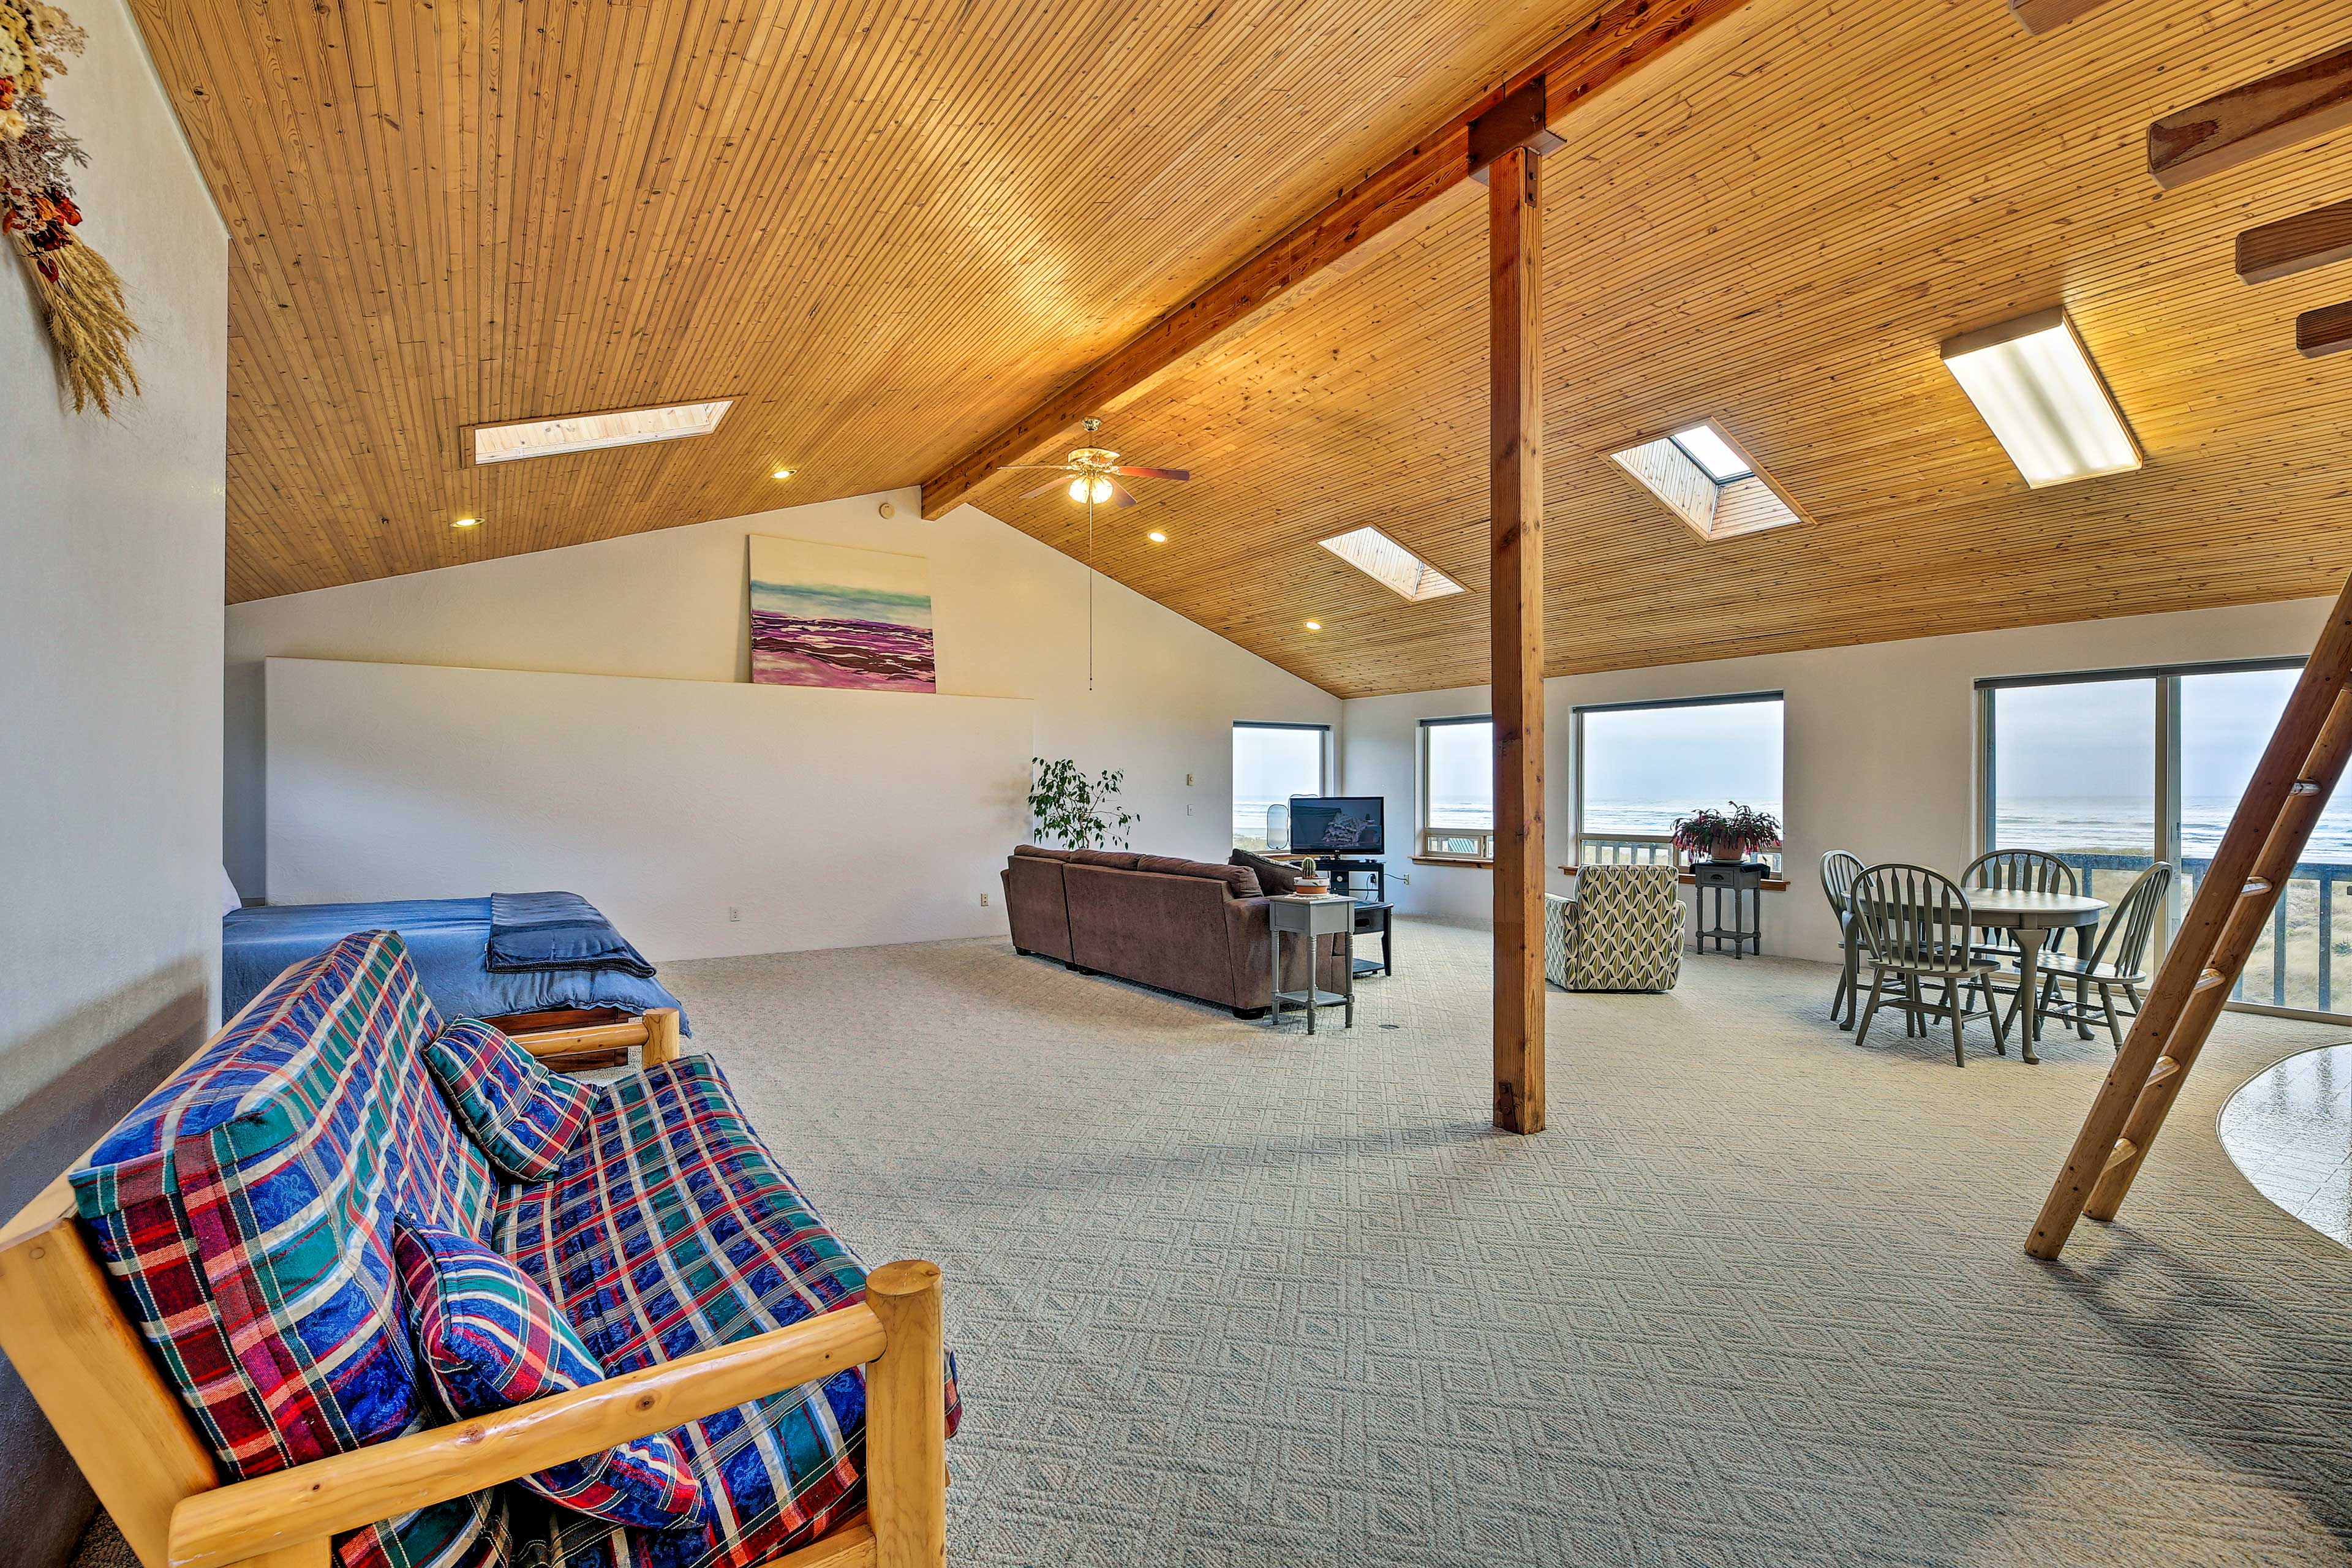 Cathedral ceilings and skylights make for an open, bright space.